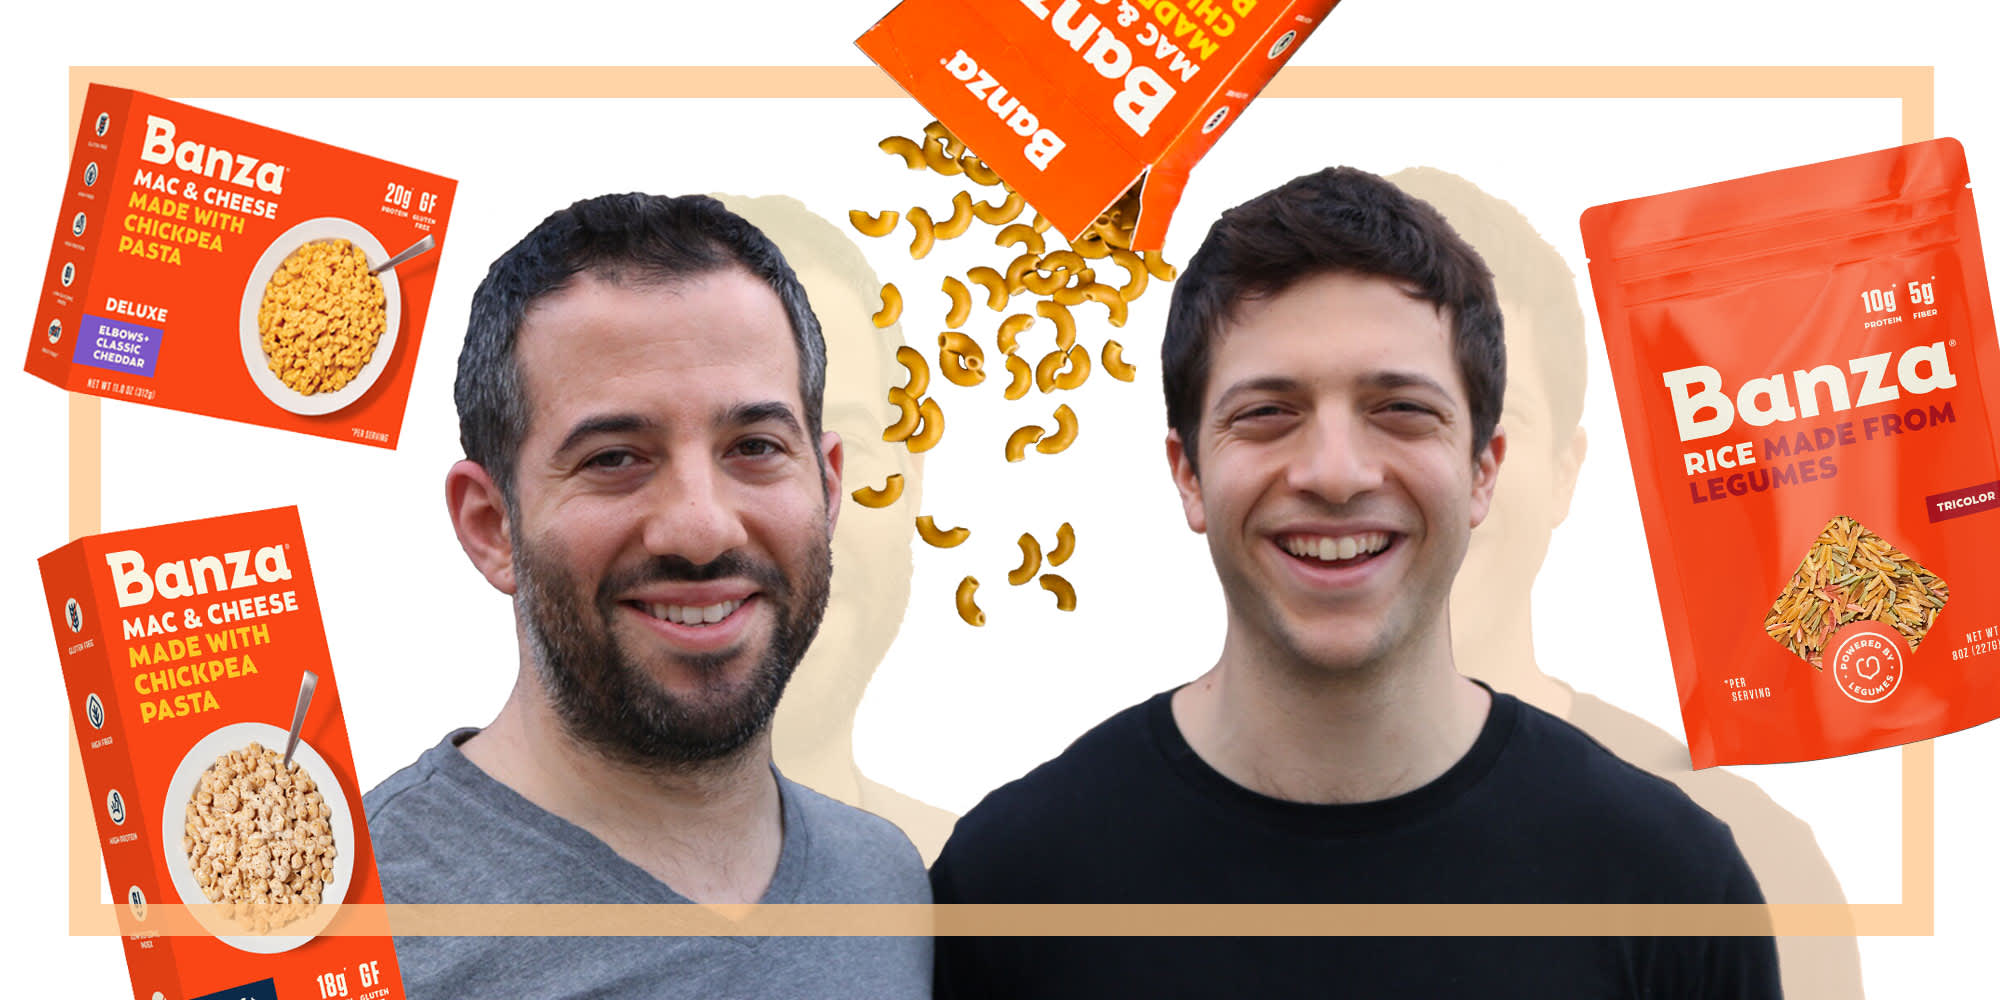 The Banza Backstory: How Two Brothers Made Chickpea Pasta a Thing